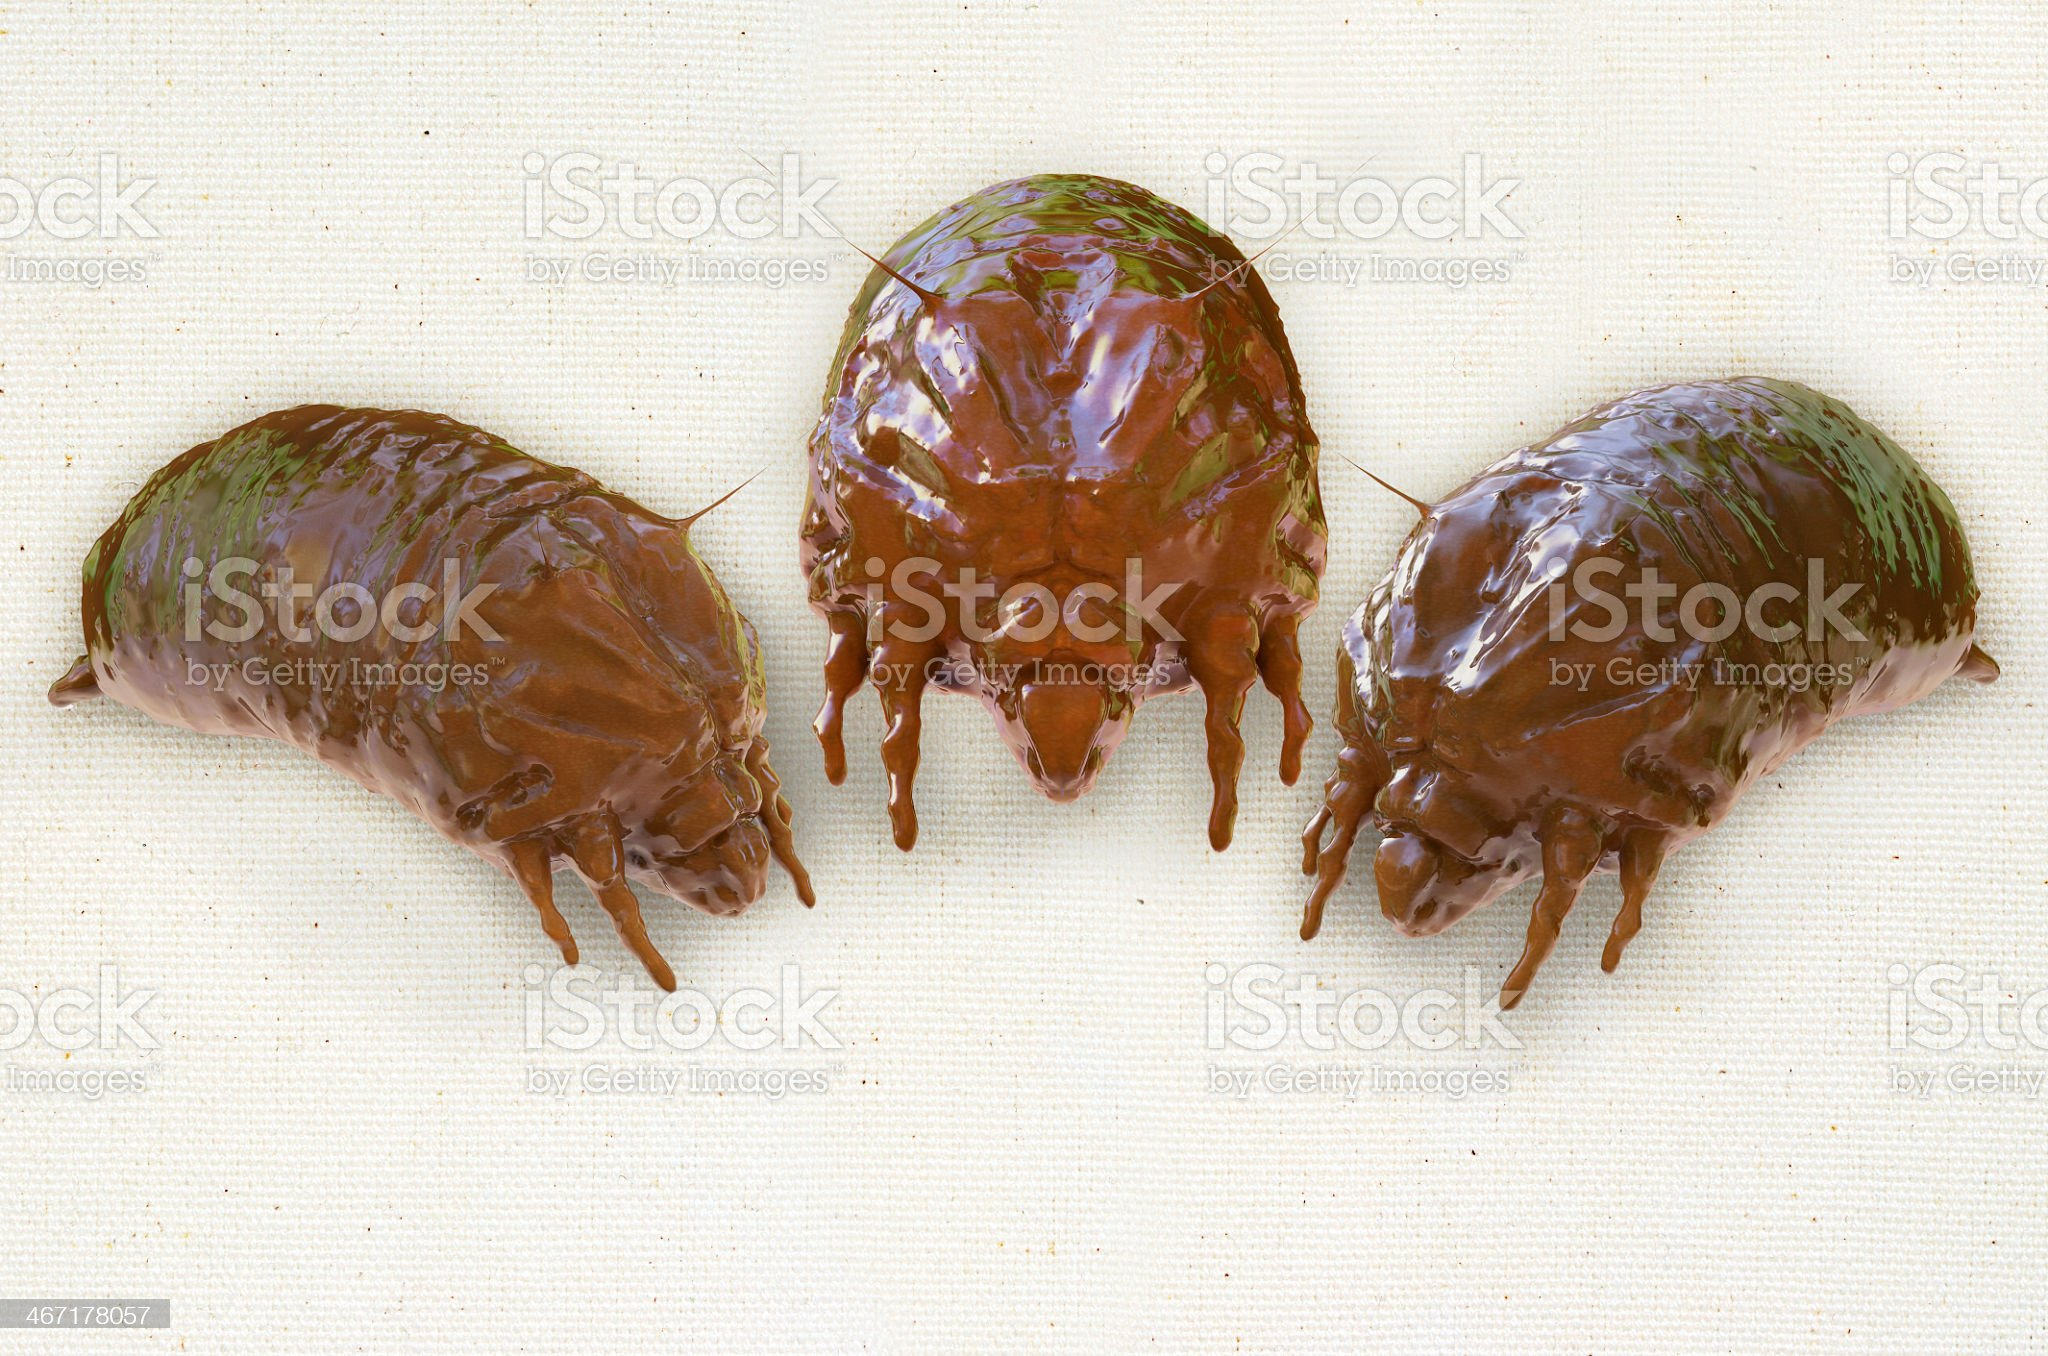 3D closeup image of three mites on a beige background royalty-free stock photo